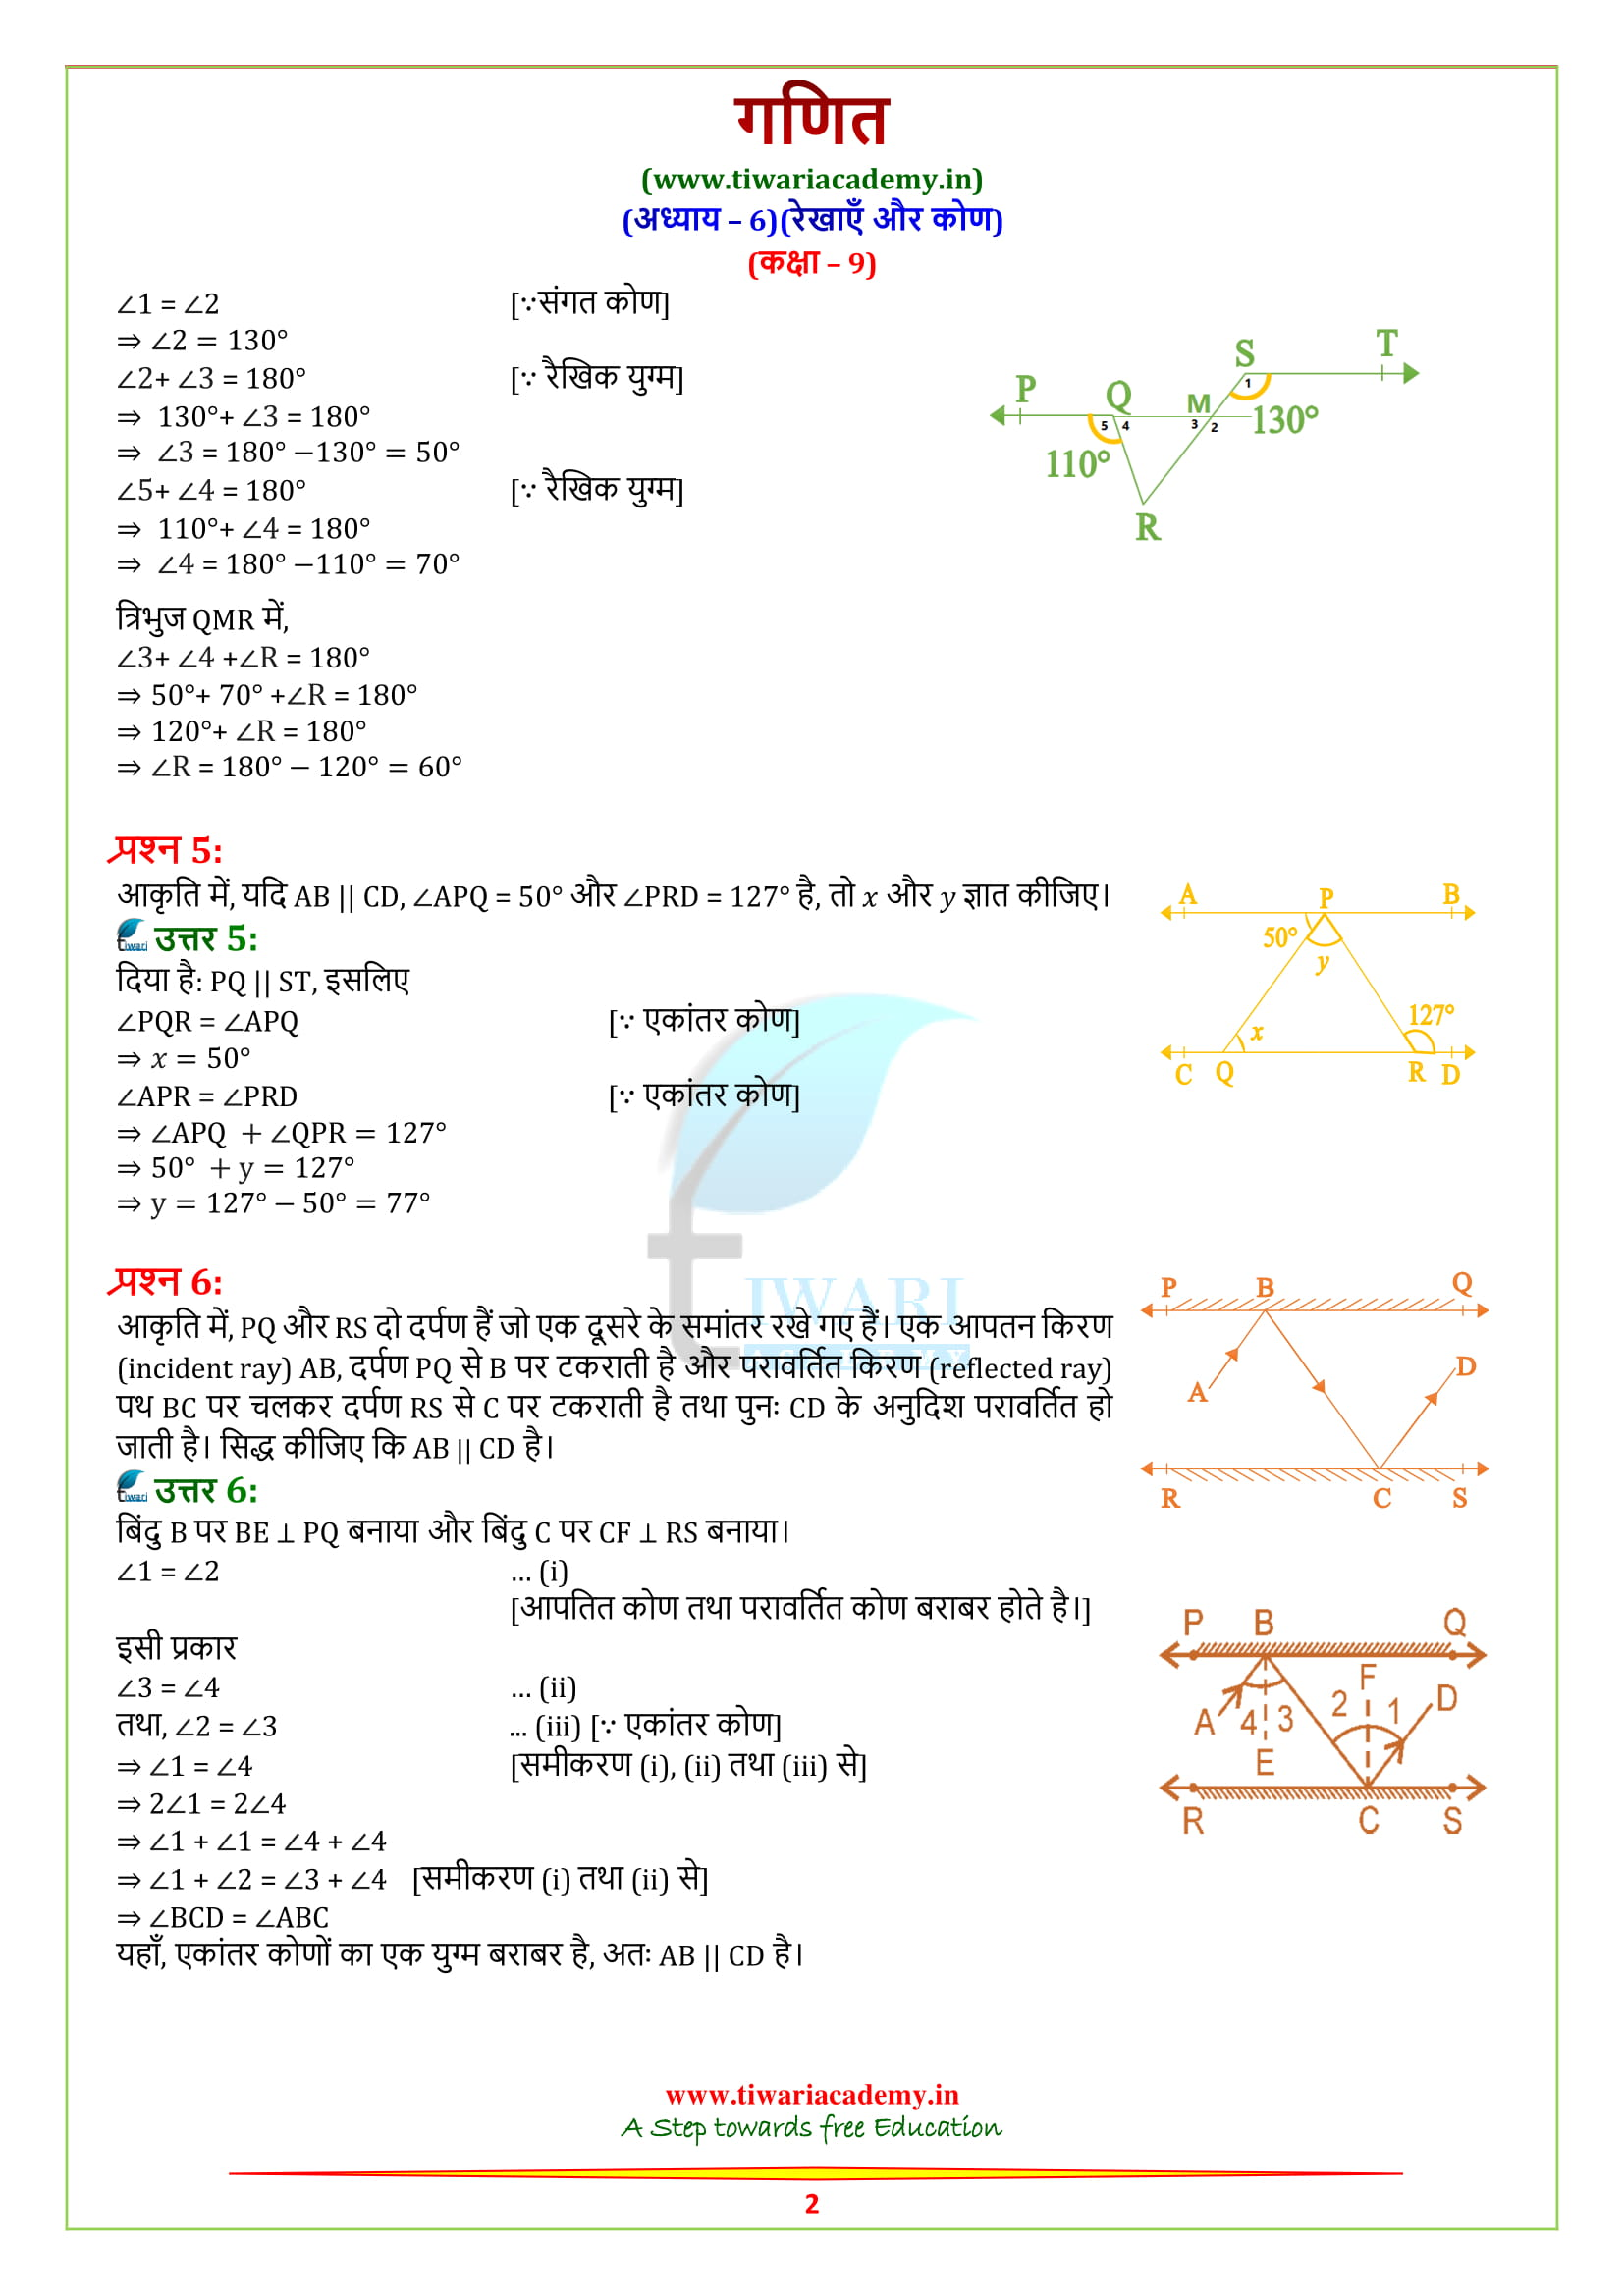 9 Maths Chapter 6 Exercise 6.2 solutions for new syllabus 2018-19